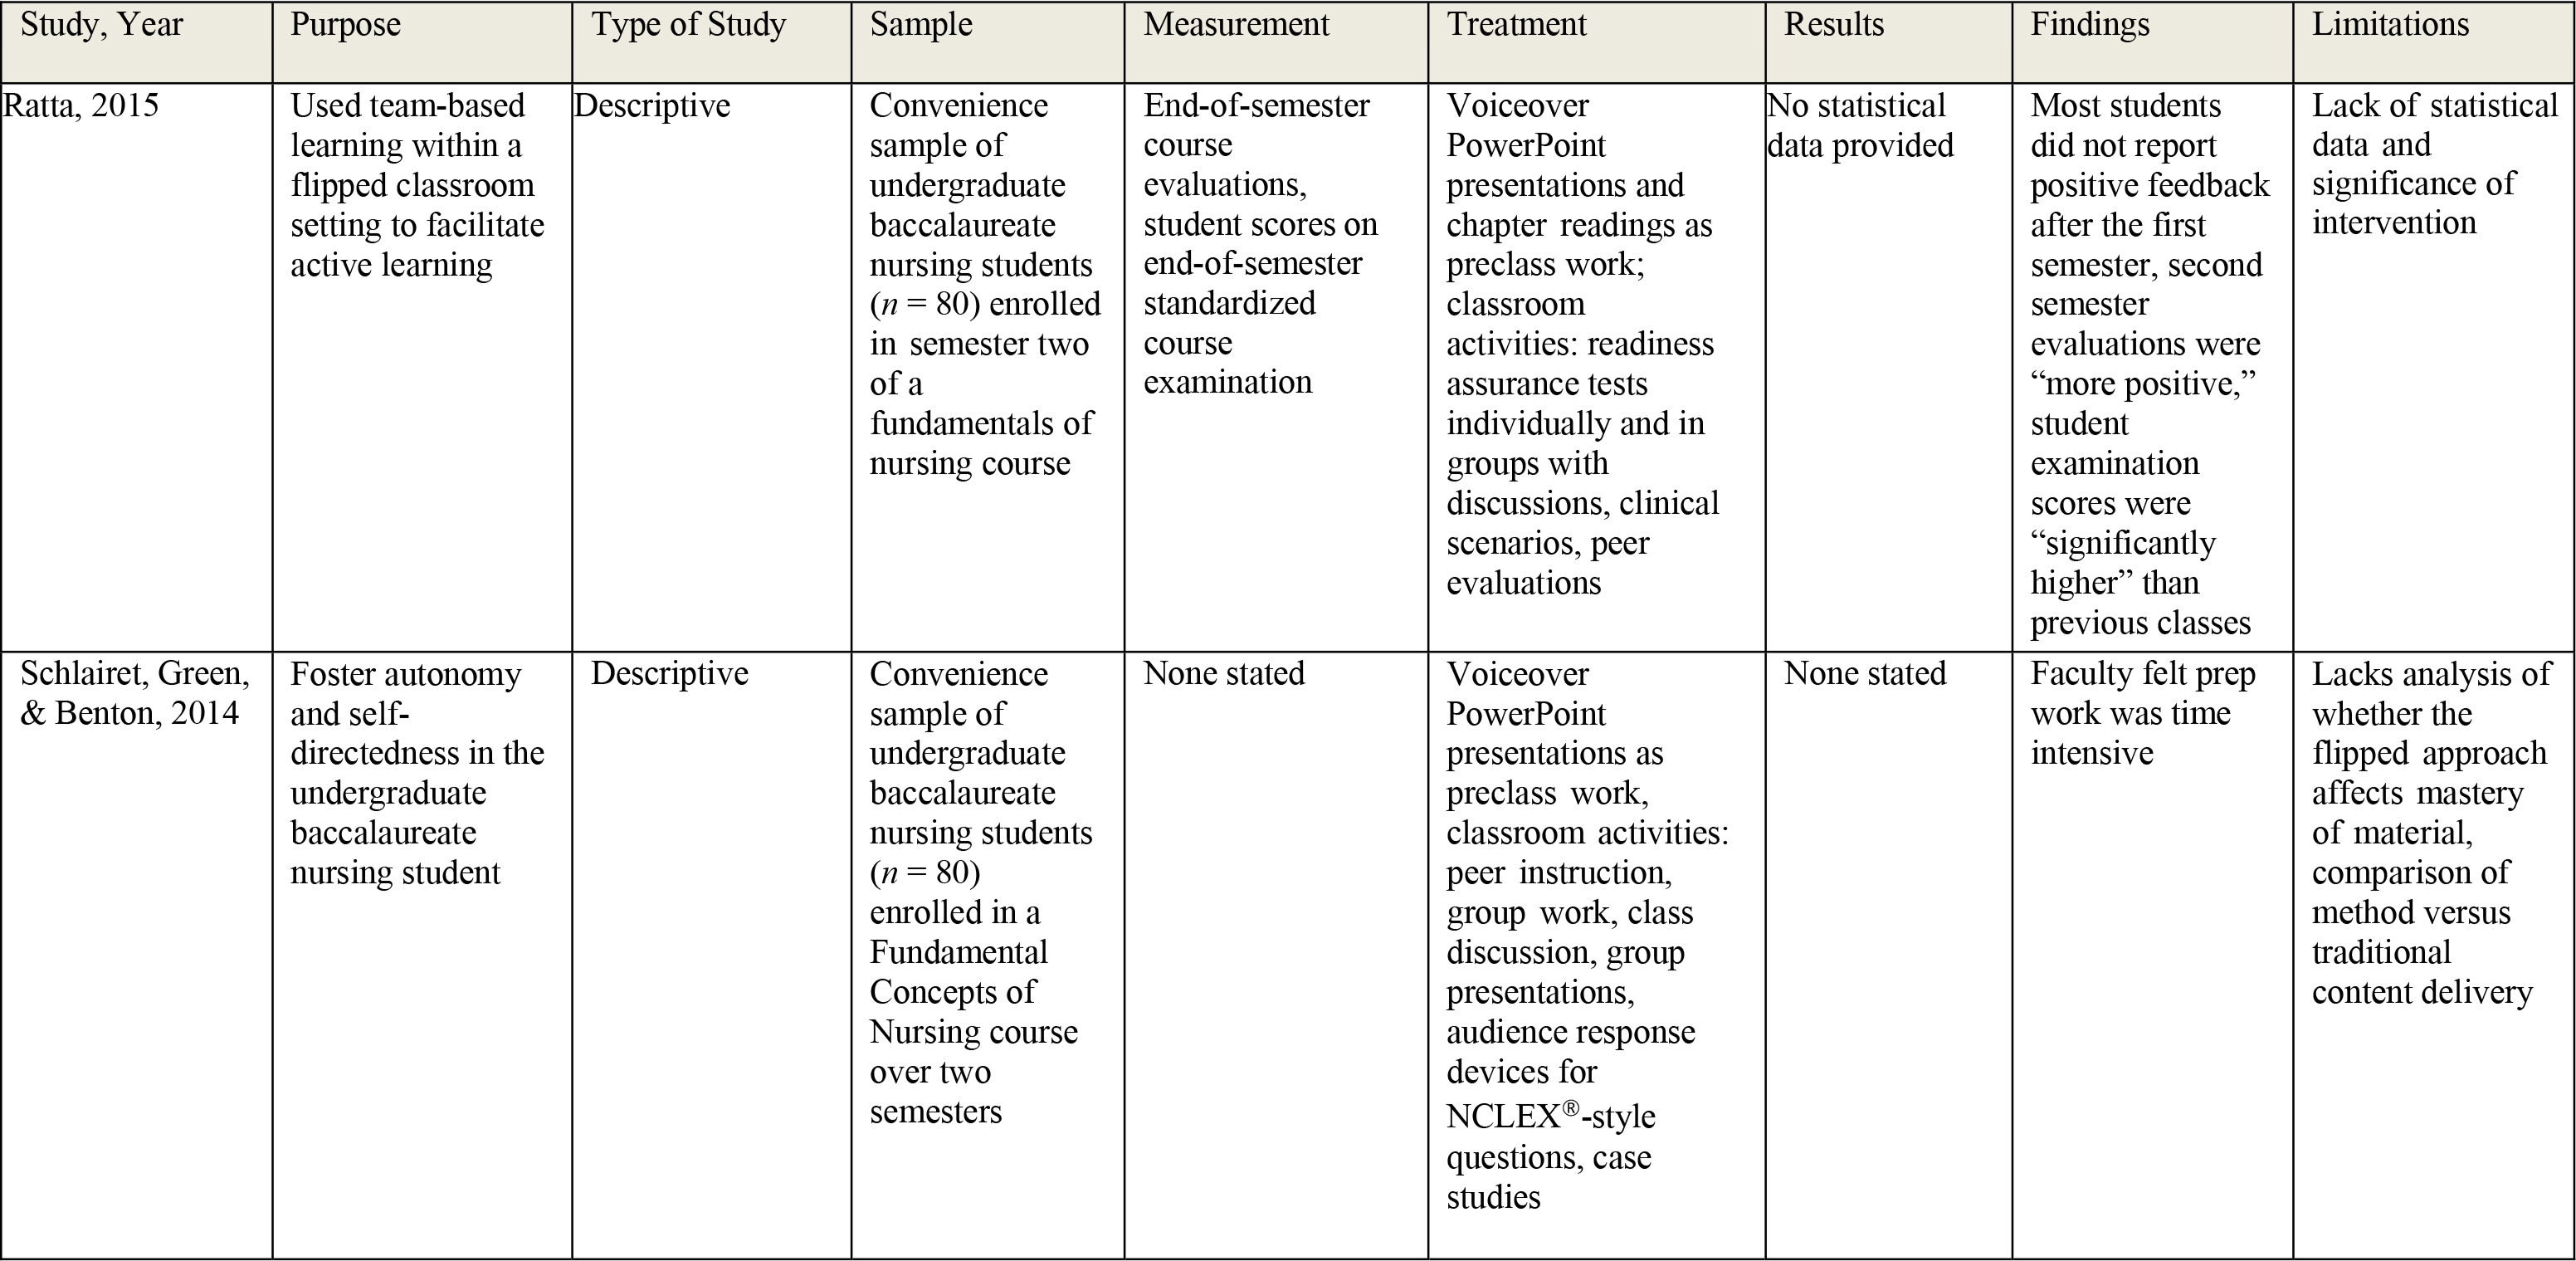 literature review matrix nursing Journal of nursing education | background:although concept mapping was created in the early 1980s, research in nursing education first appeared in 1992 this literature review analyzes the impact of concept mapping in nursing educationmethod:a total of 221 articles, books, and book chapters were.